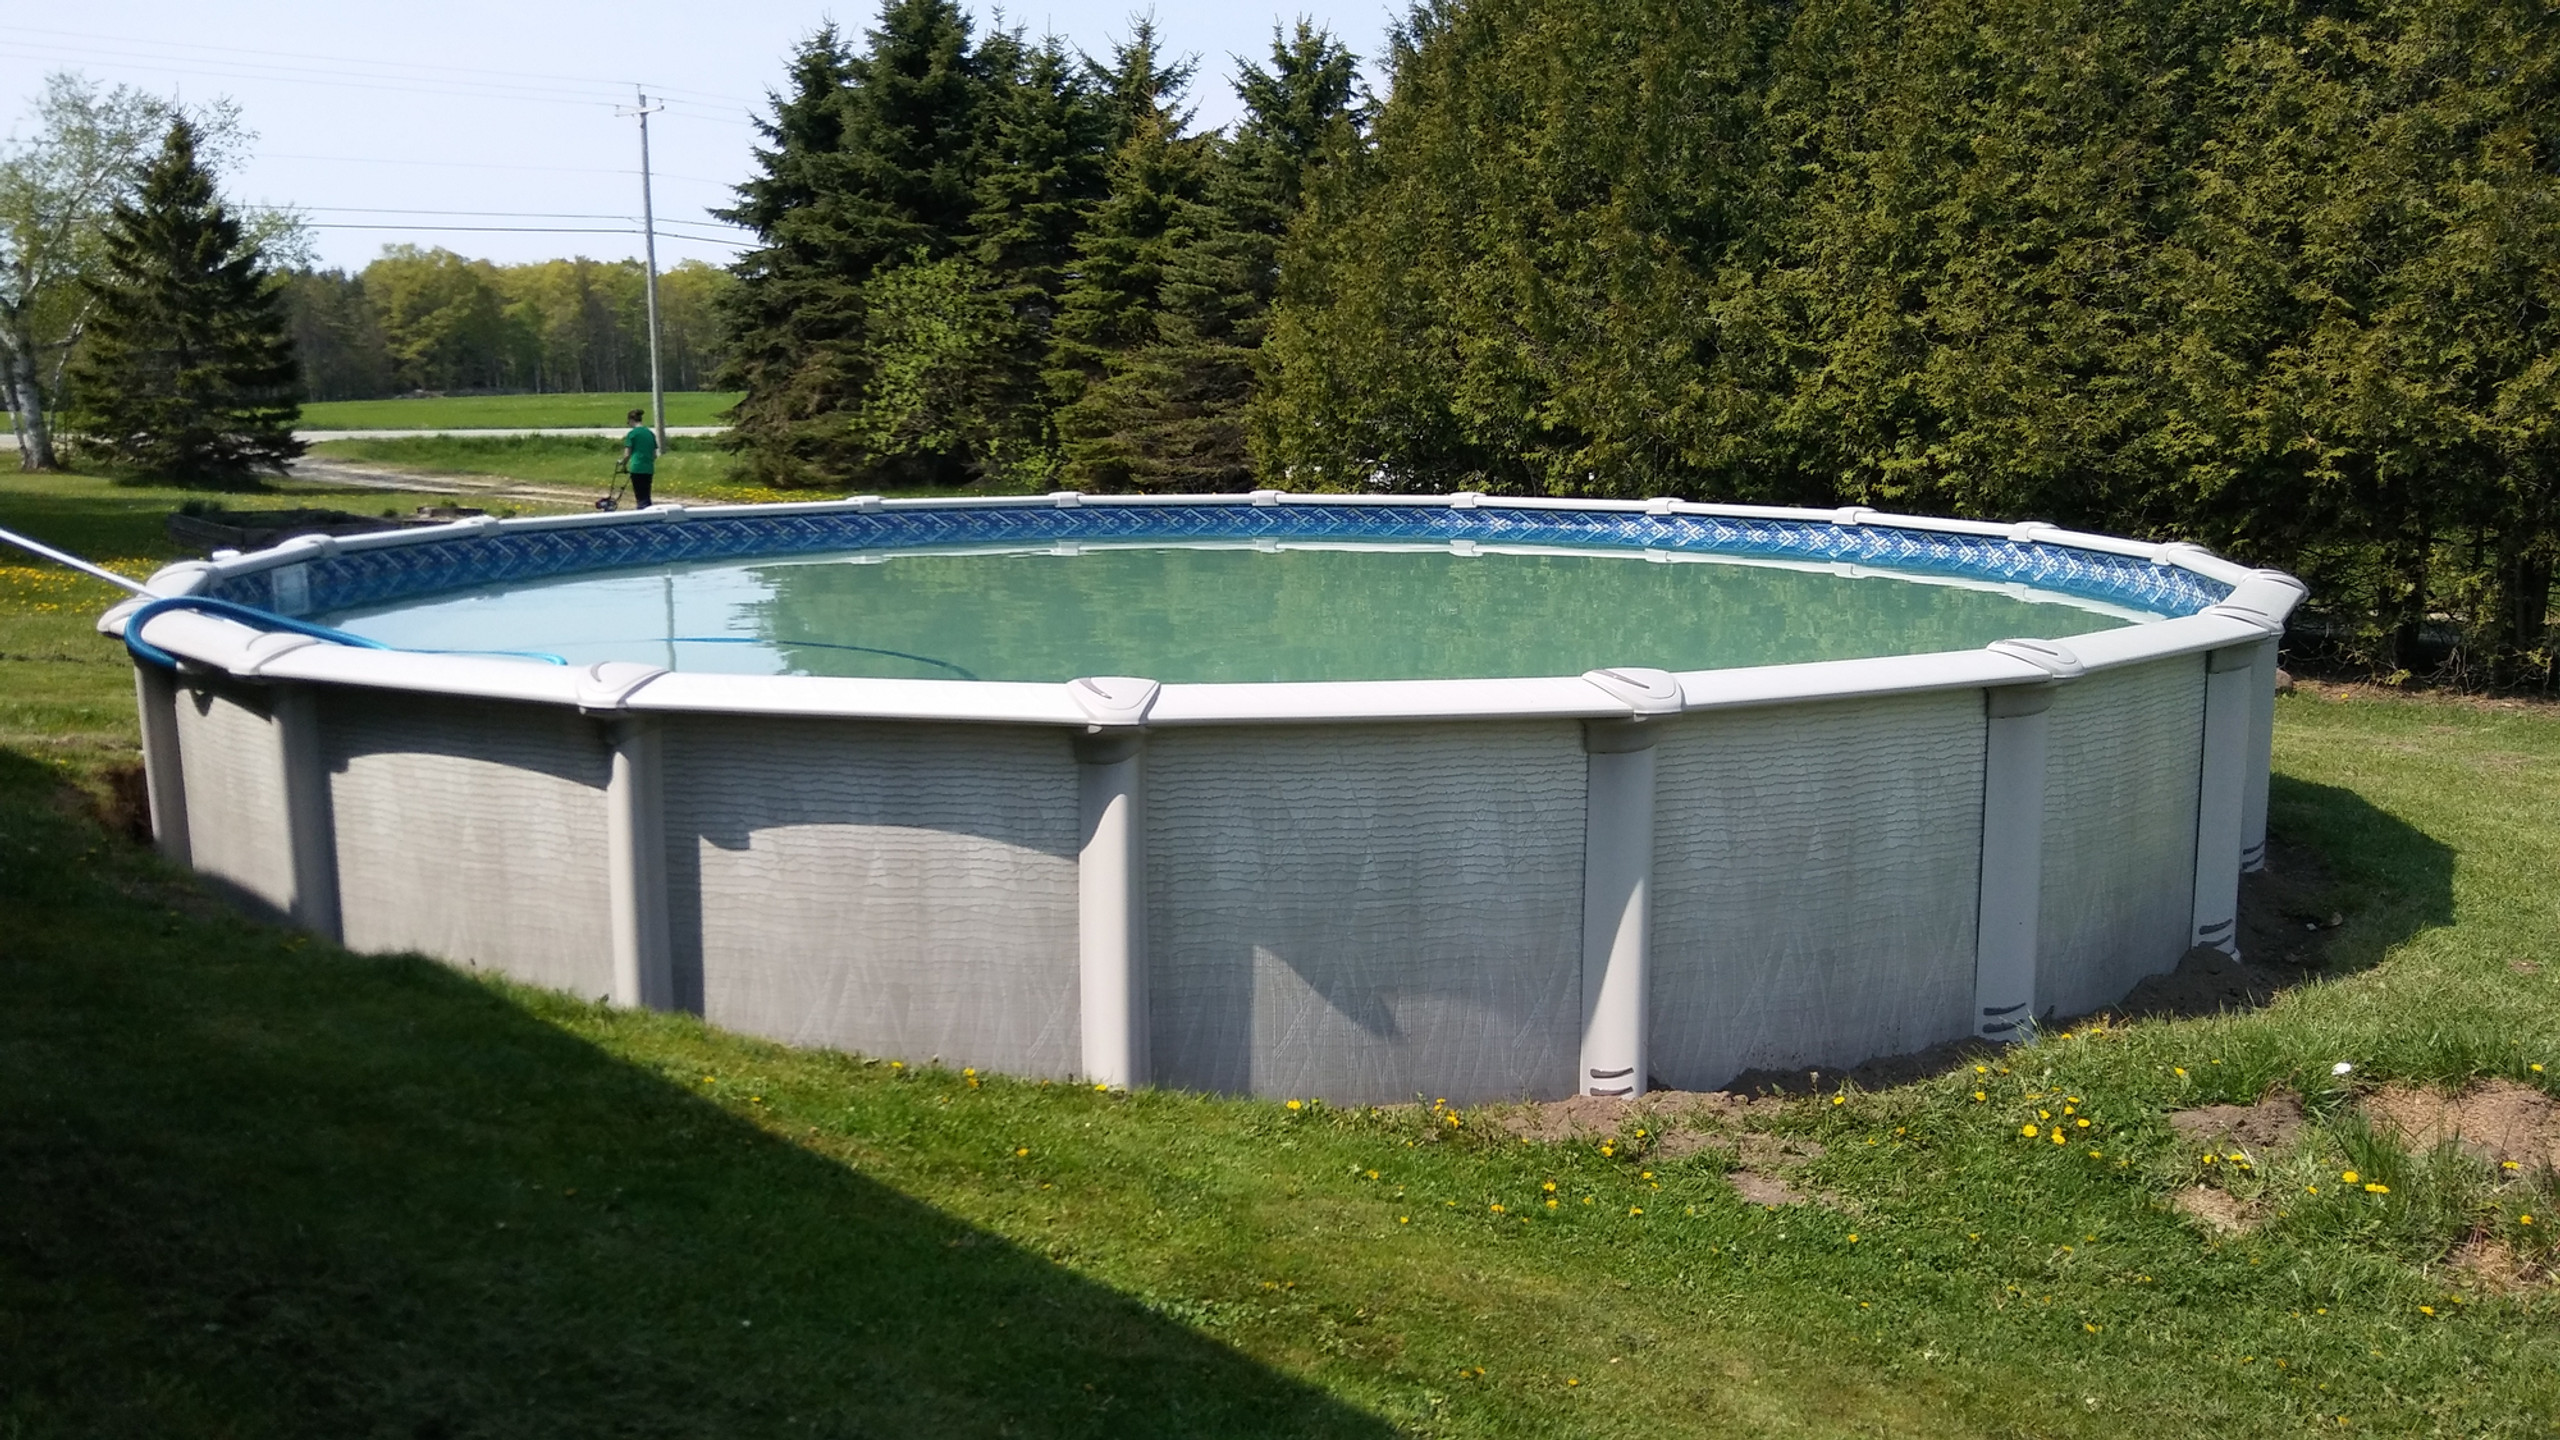 This 30' Evolution Above Ground Pool by Pool Pros was built in Sturgeon Bay, WI.